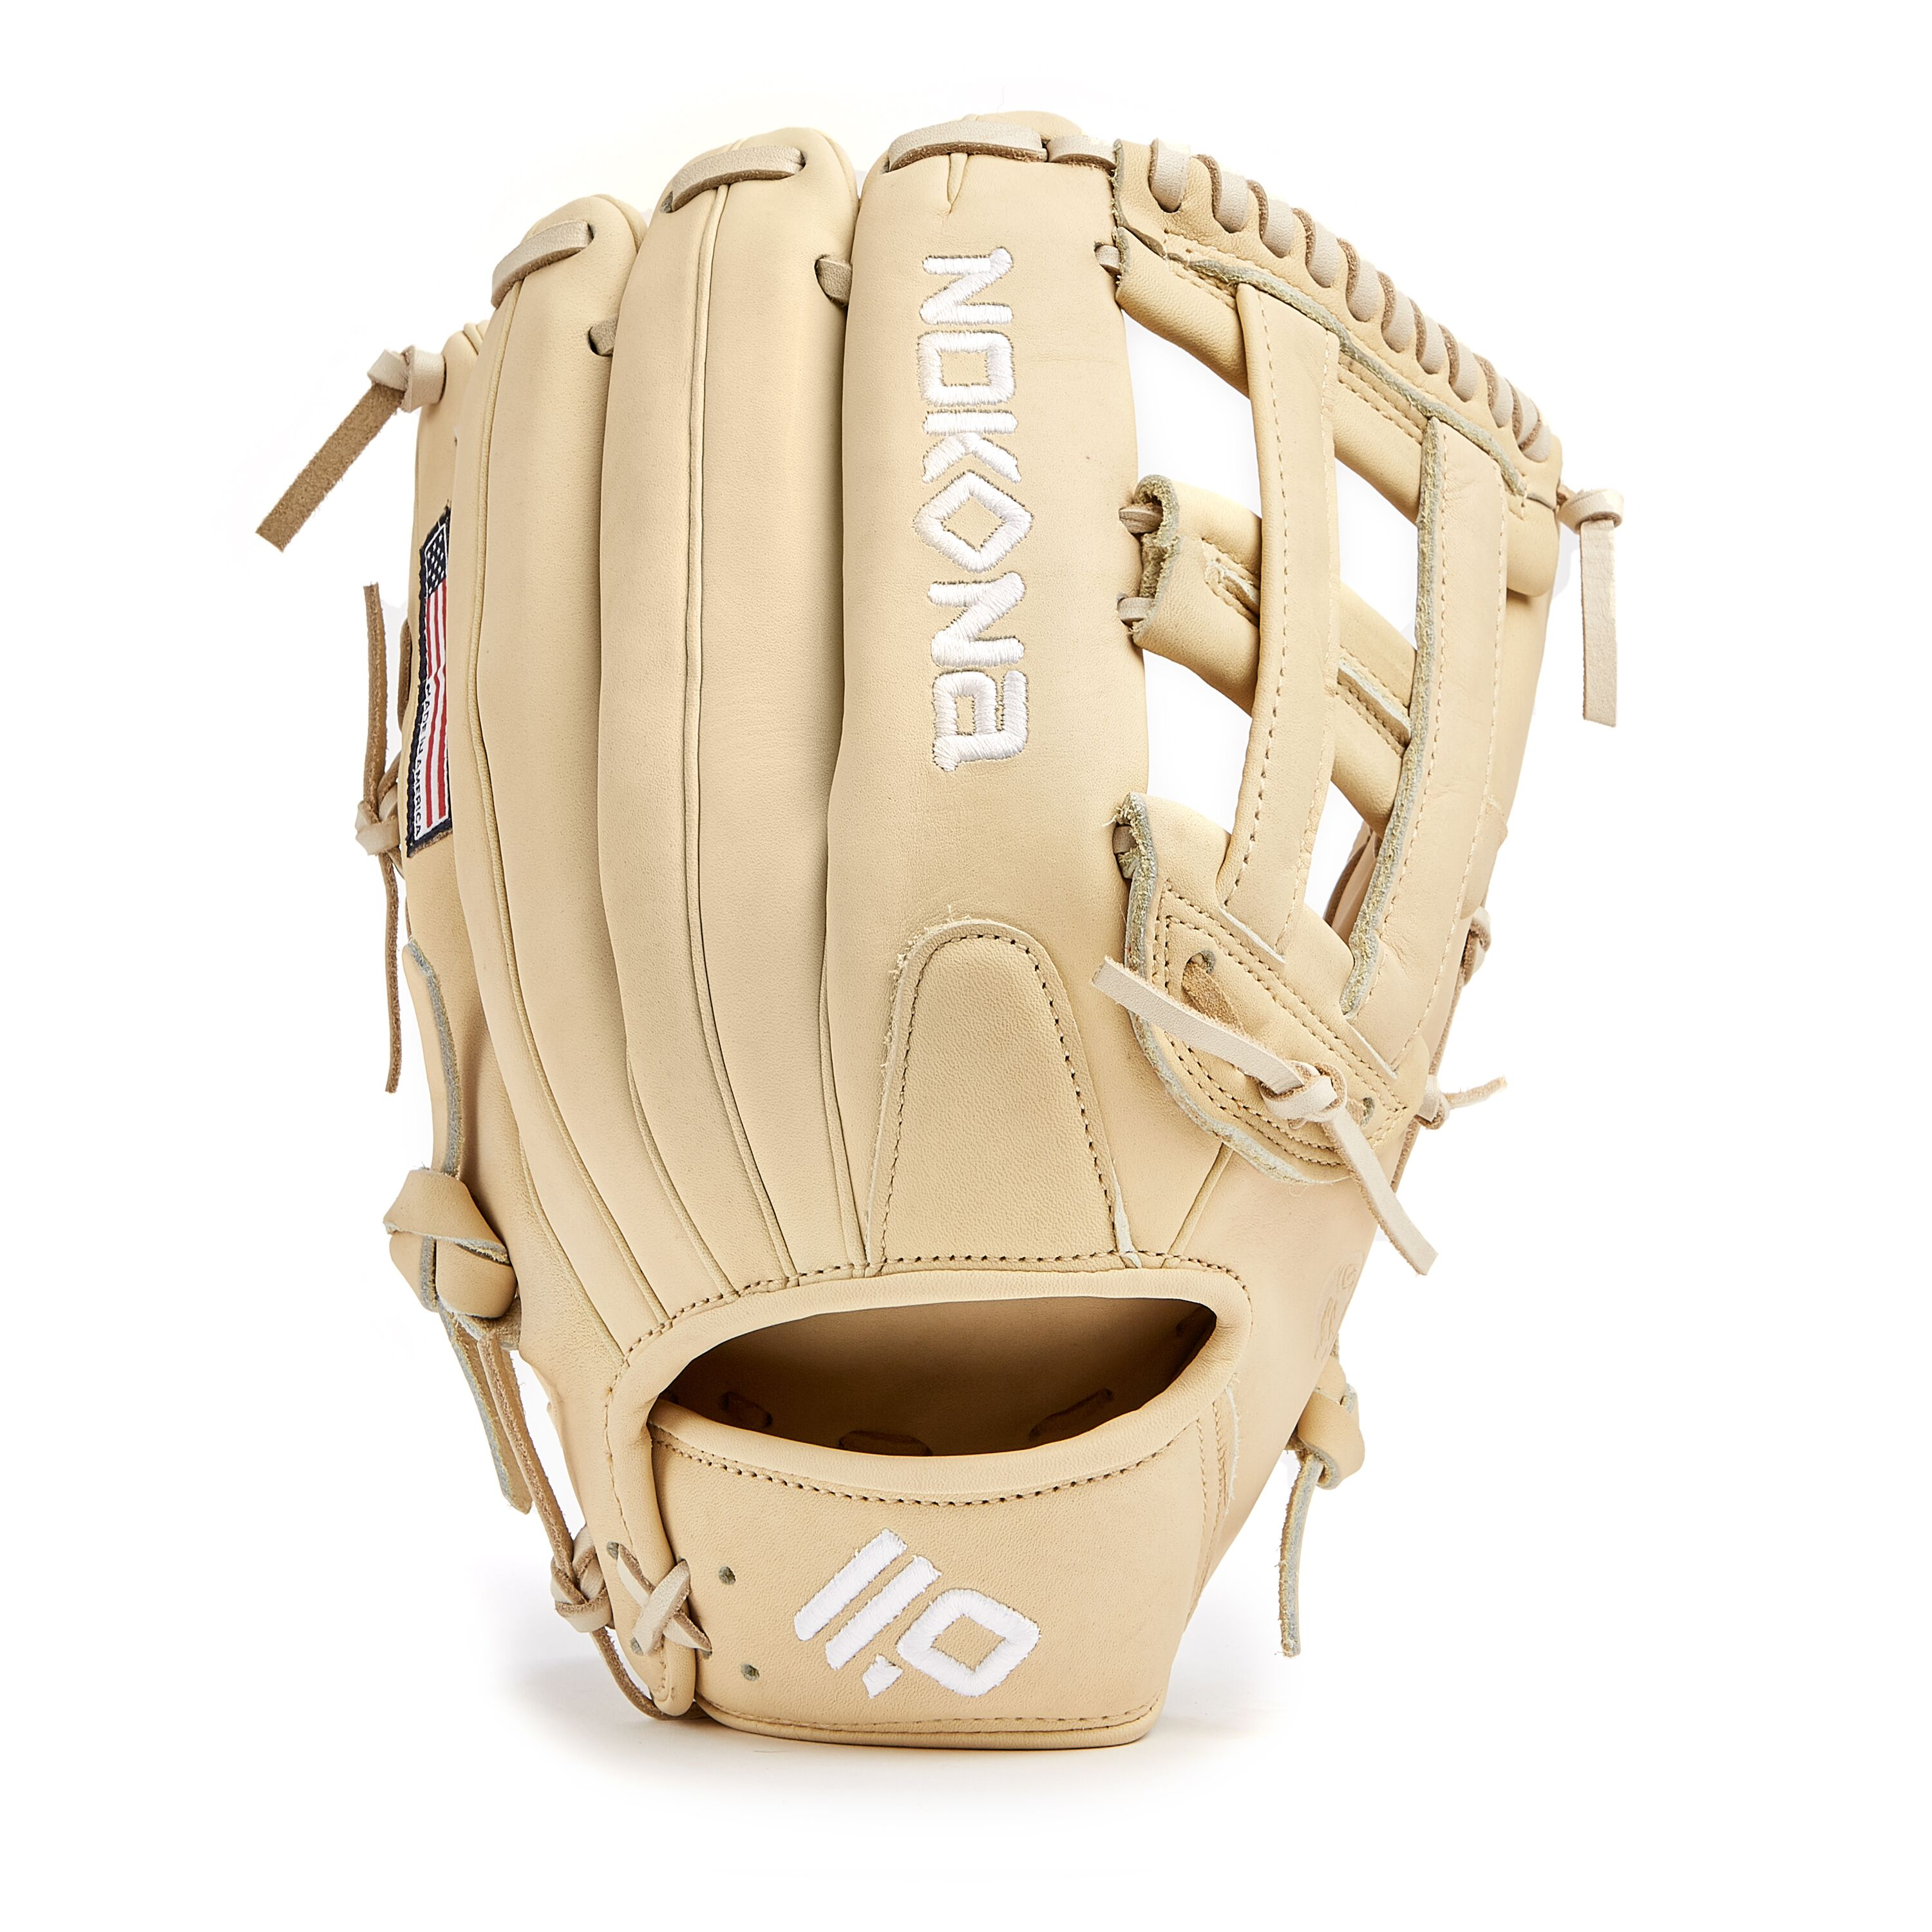 nokona-blonde-americankip-baseball-glove-12-75-right-hand-throw A-1275H-BL-RightHandThrow  808808894407 <span>The American Kip series made with the finest American steer hide